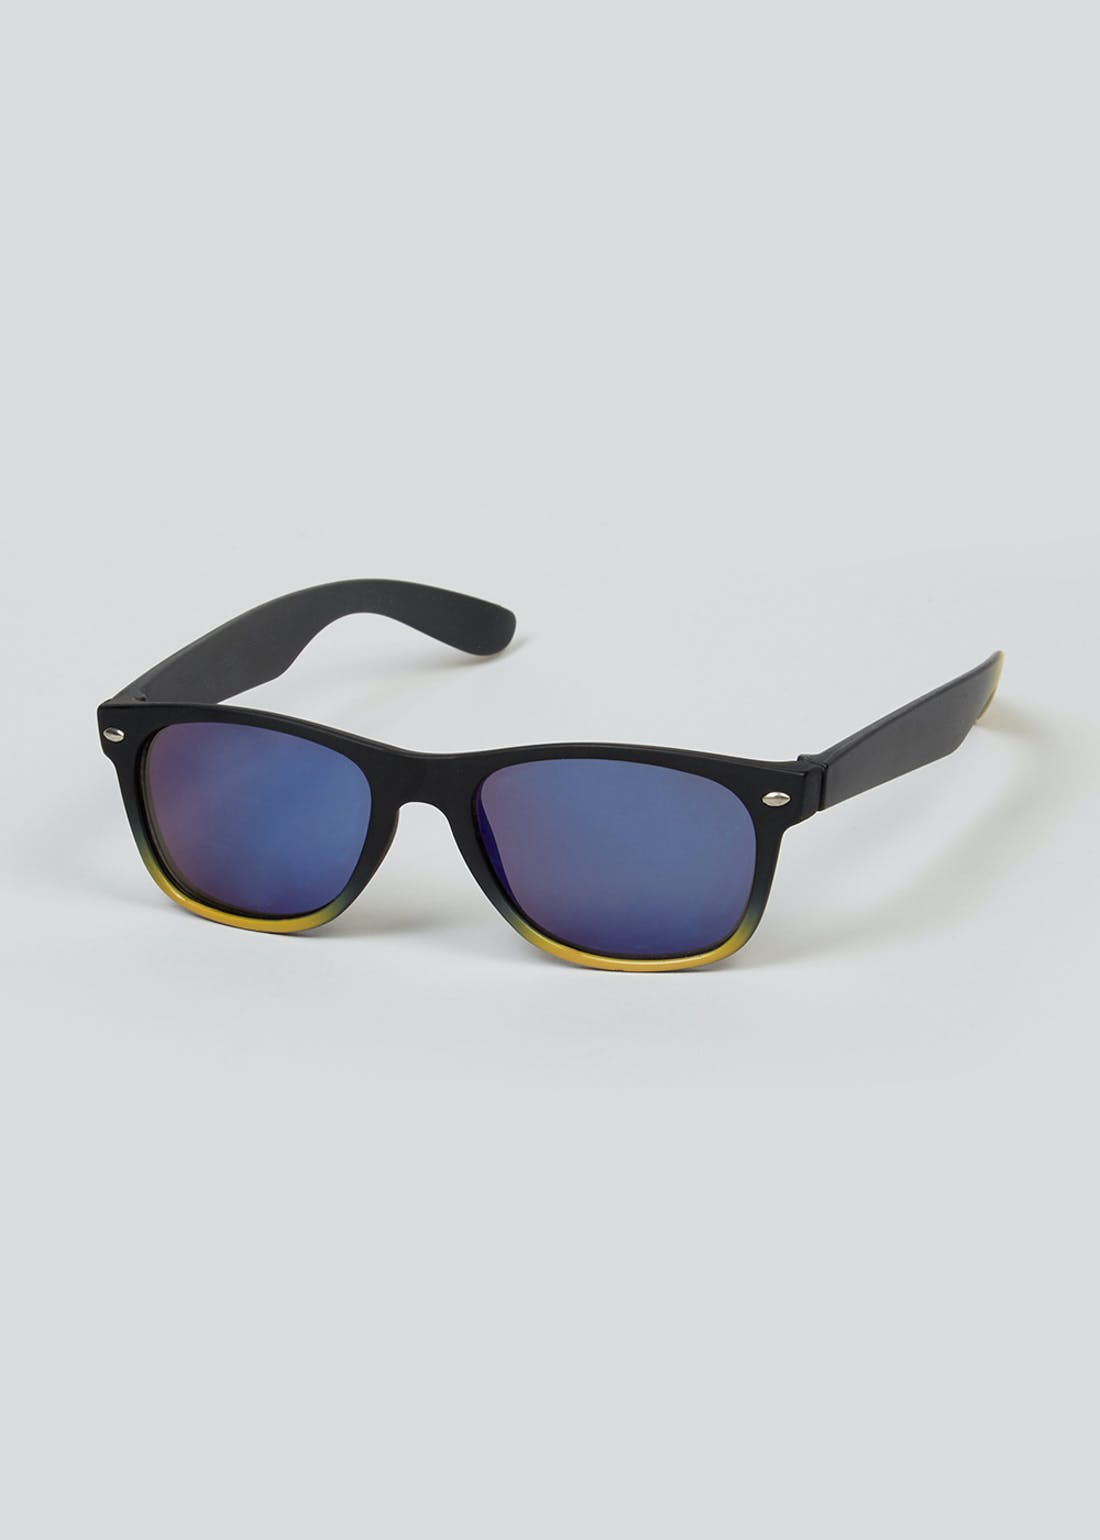 Boys Ombre Sunglasses (One Size)